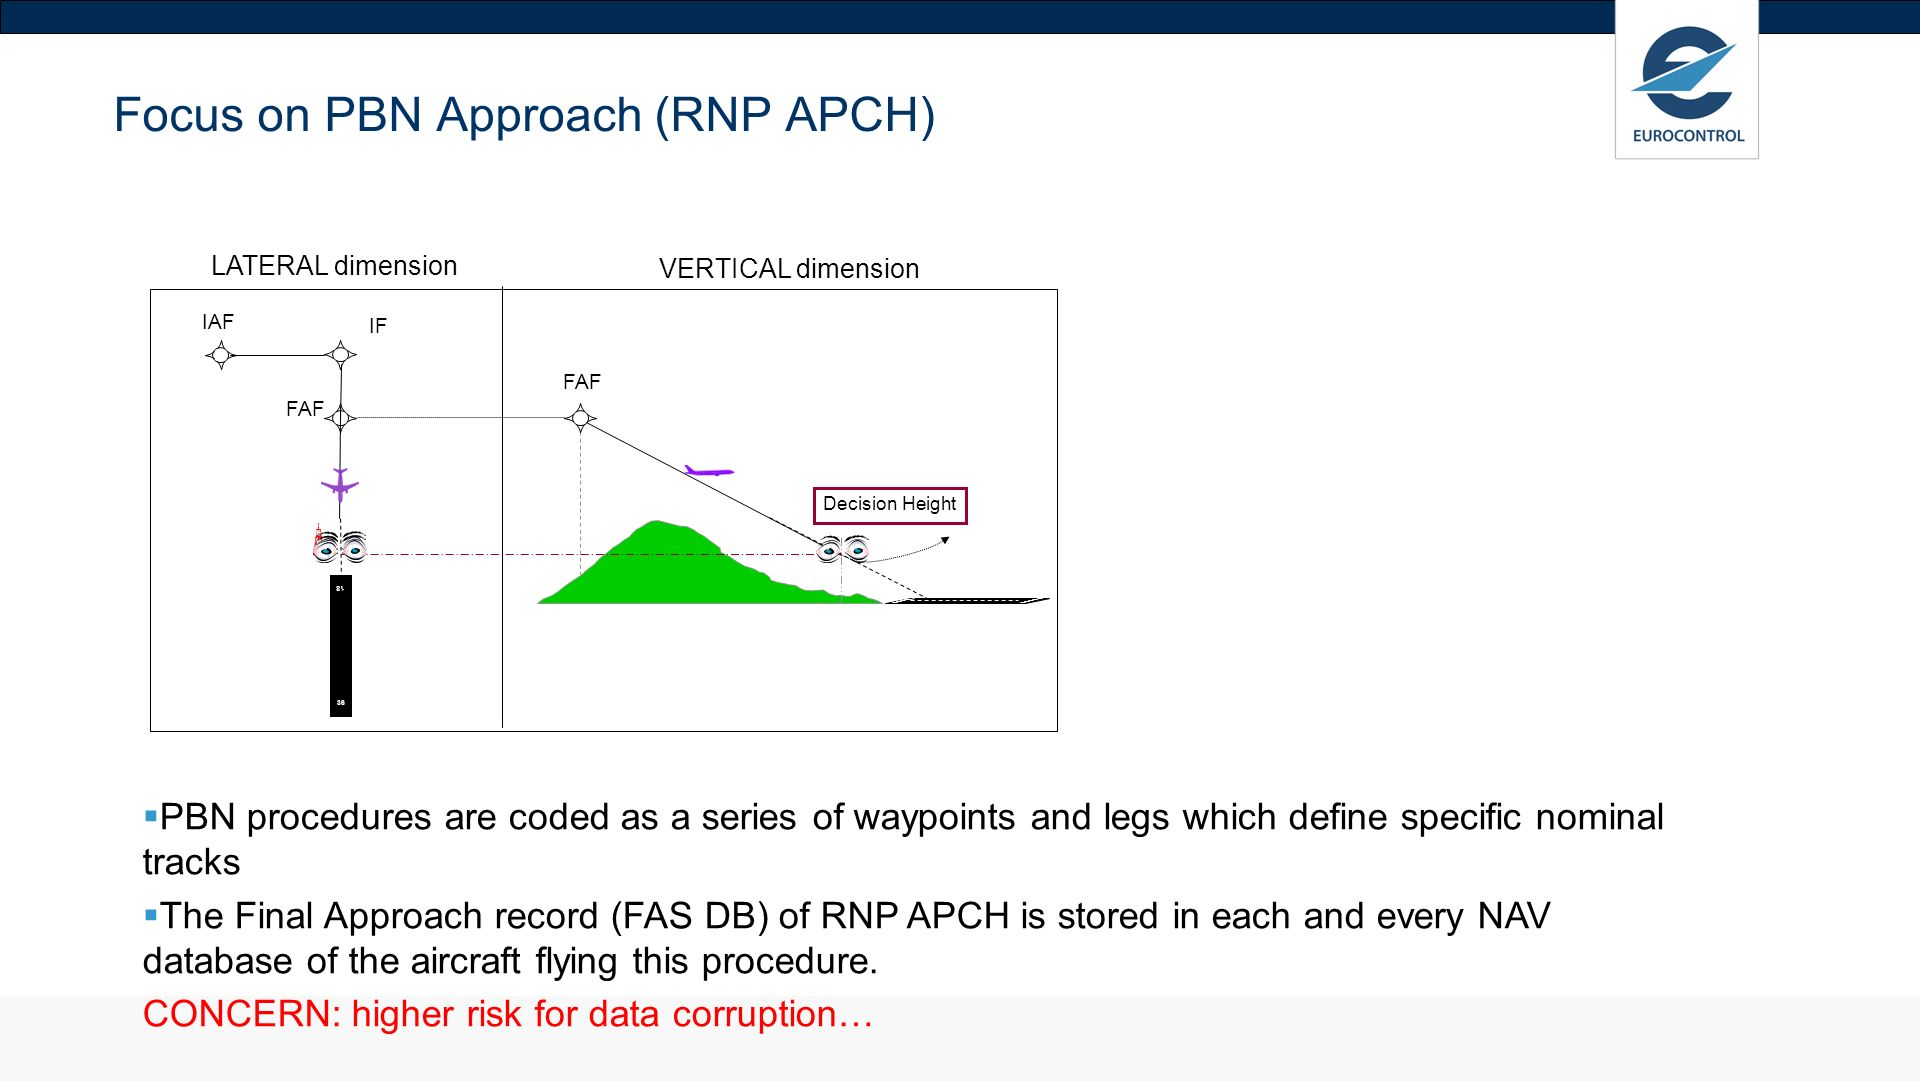 Focus on PBN Approach (RNP APCH)